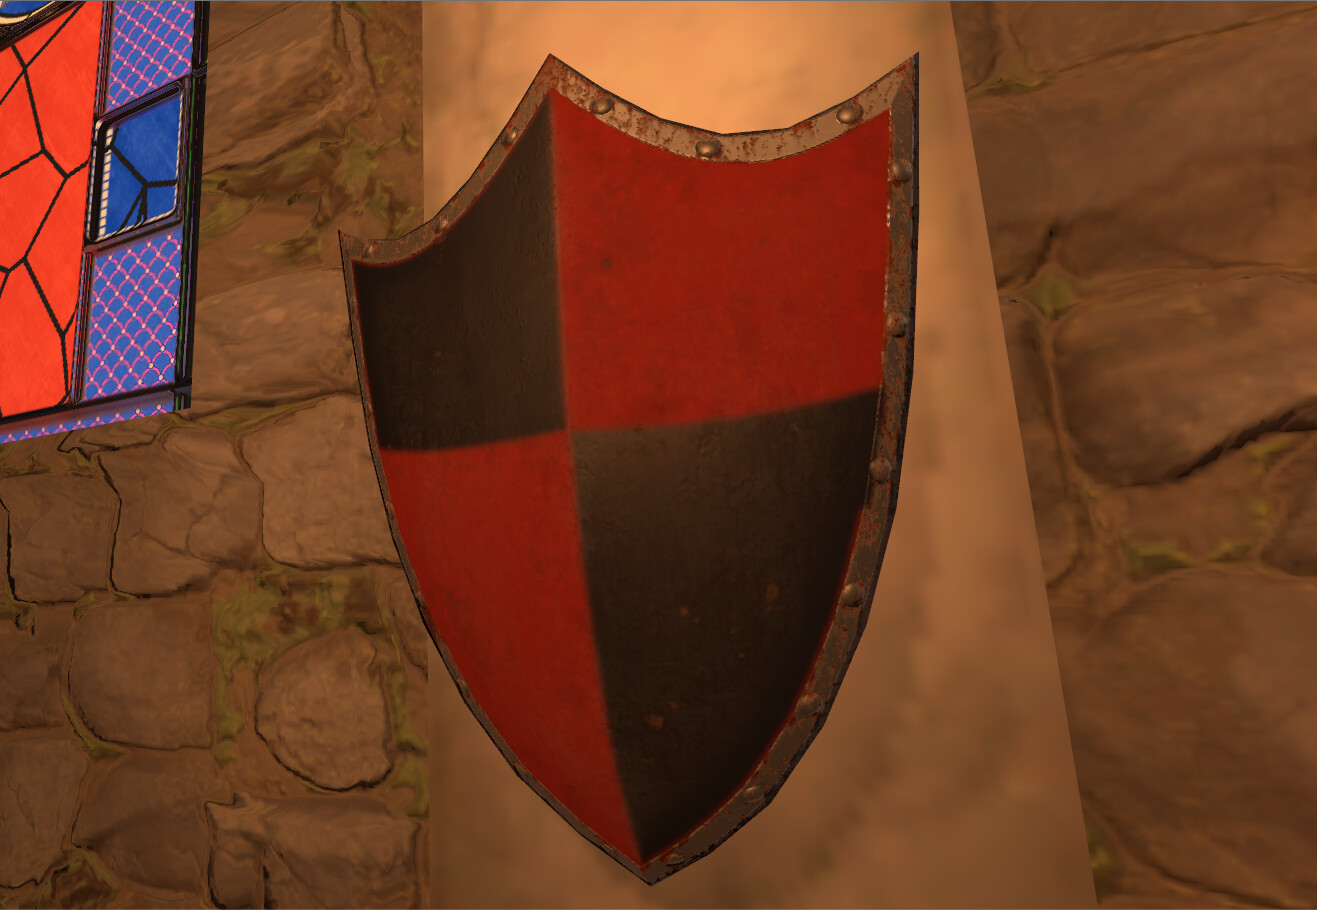 A (not historically accurate) shield